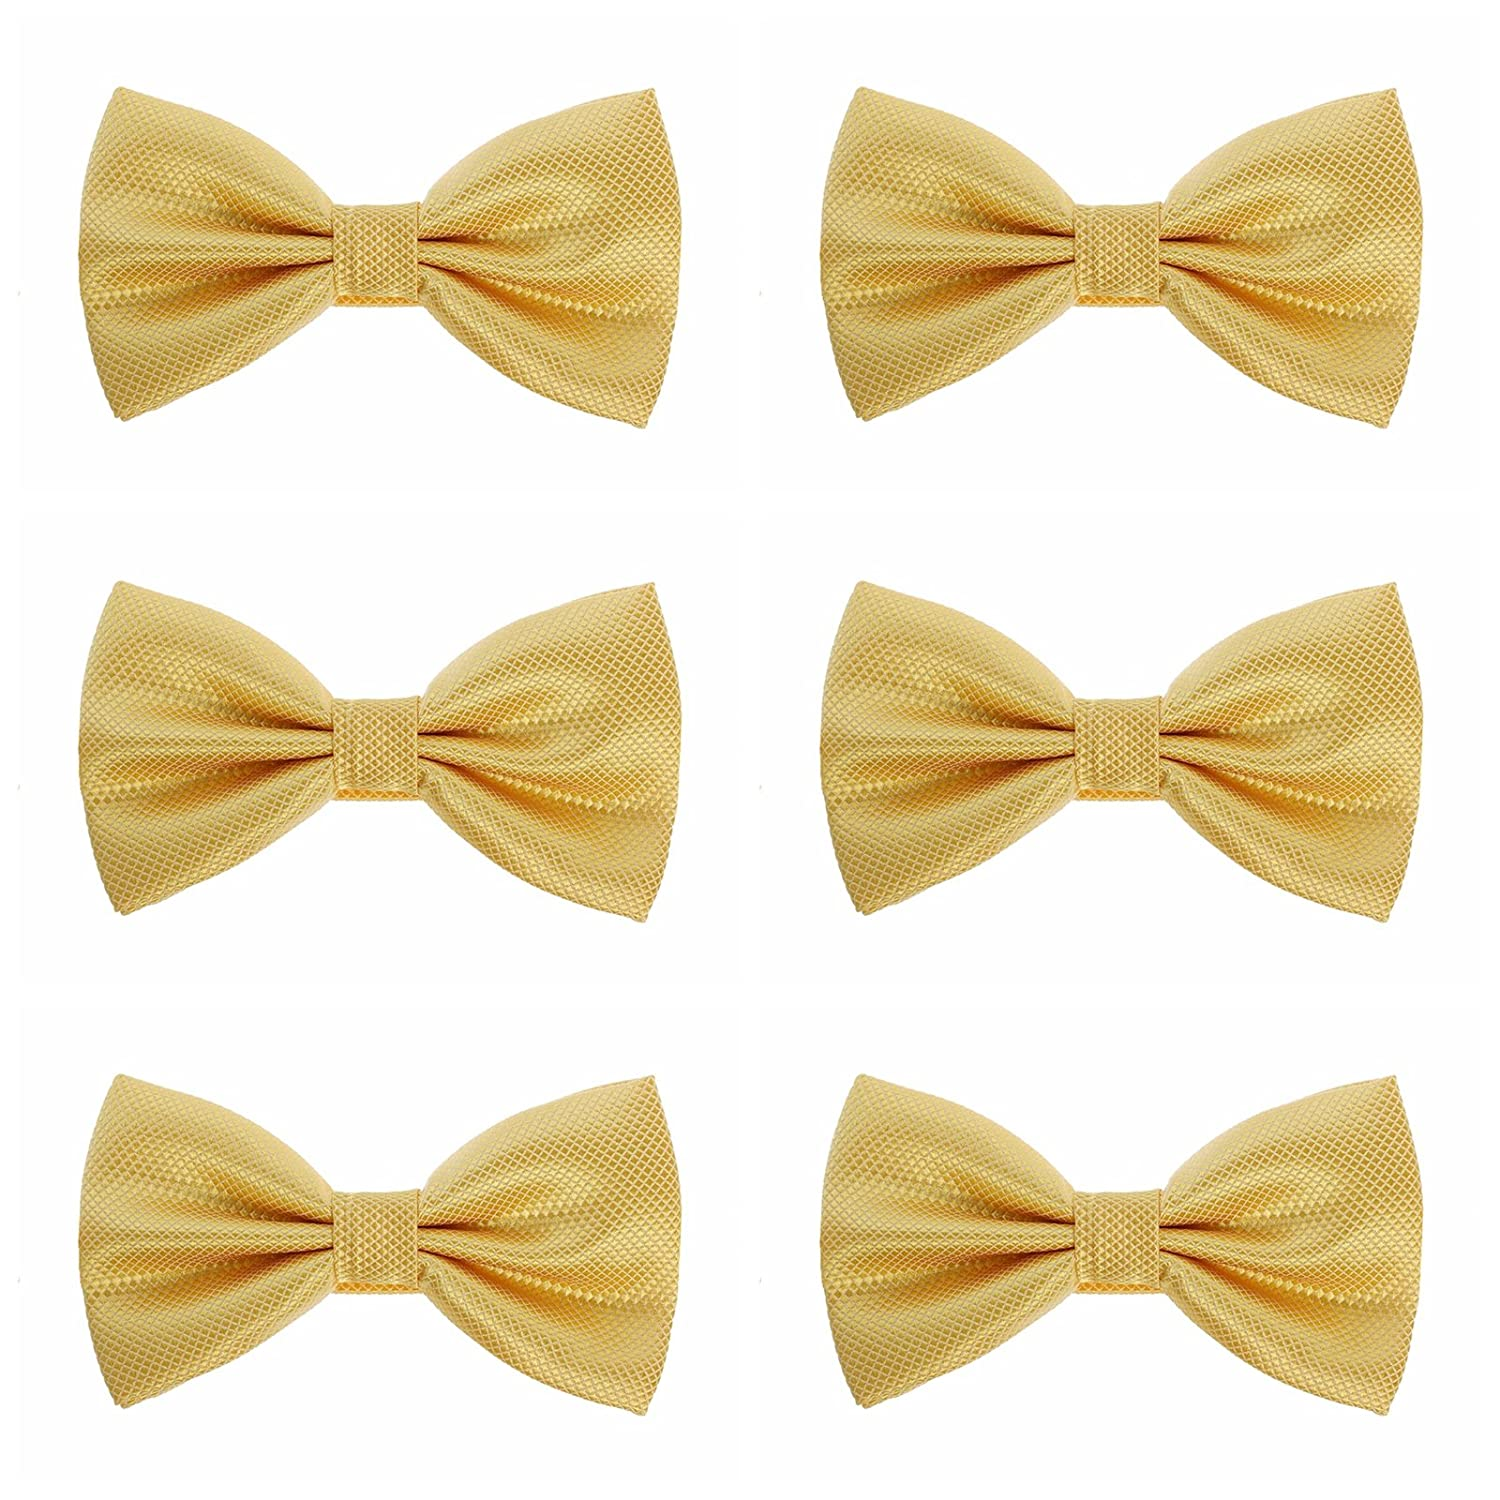 Mens Boys Formal Bow Ties - 6 Pack of Solid Color Adjustable Pre Tied Bowties (Champagne)